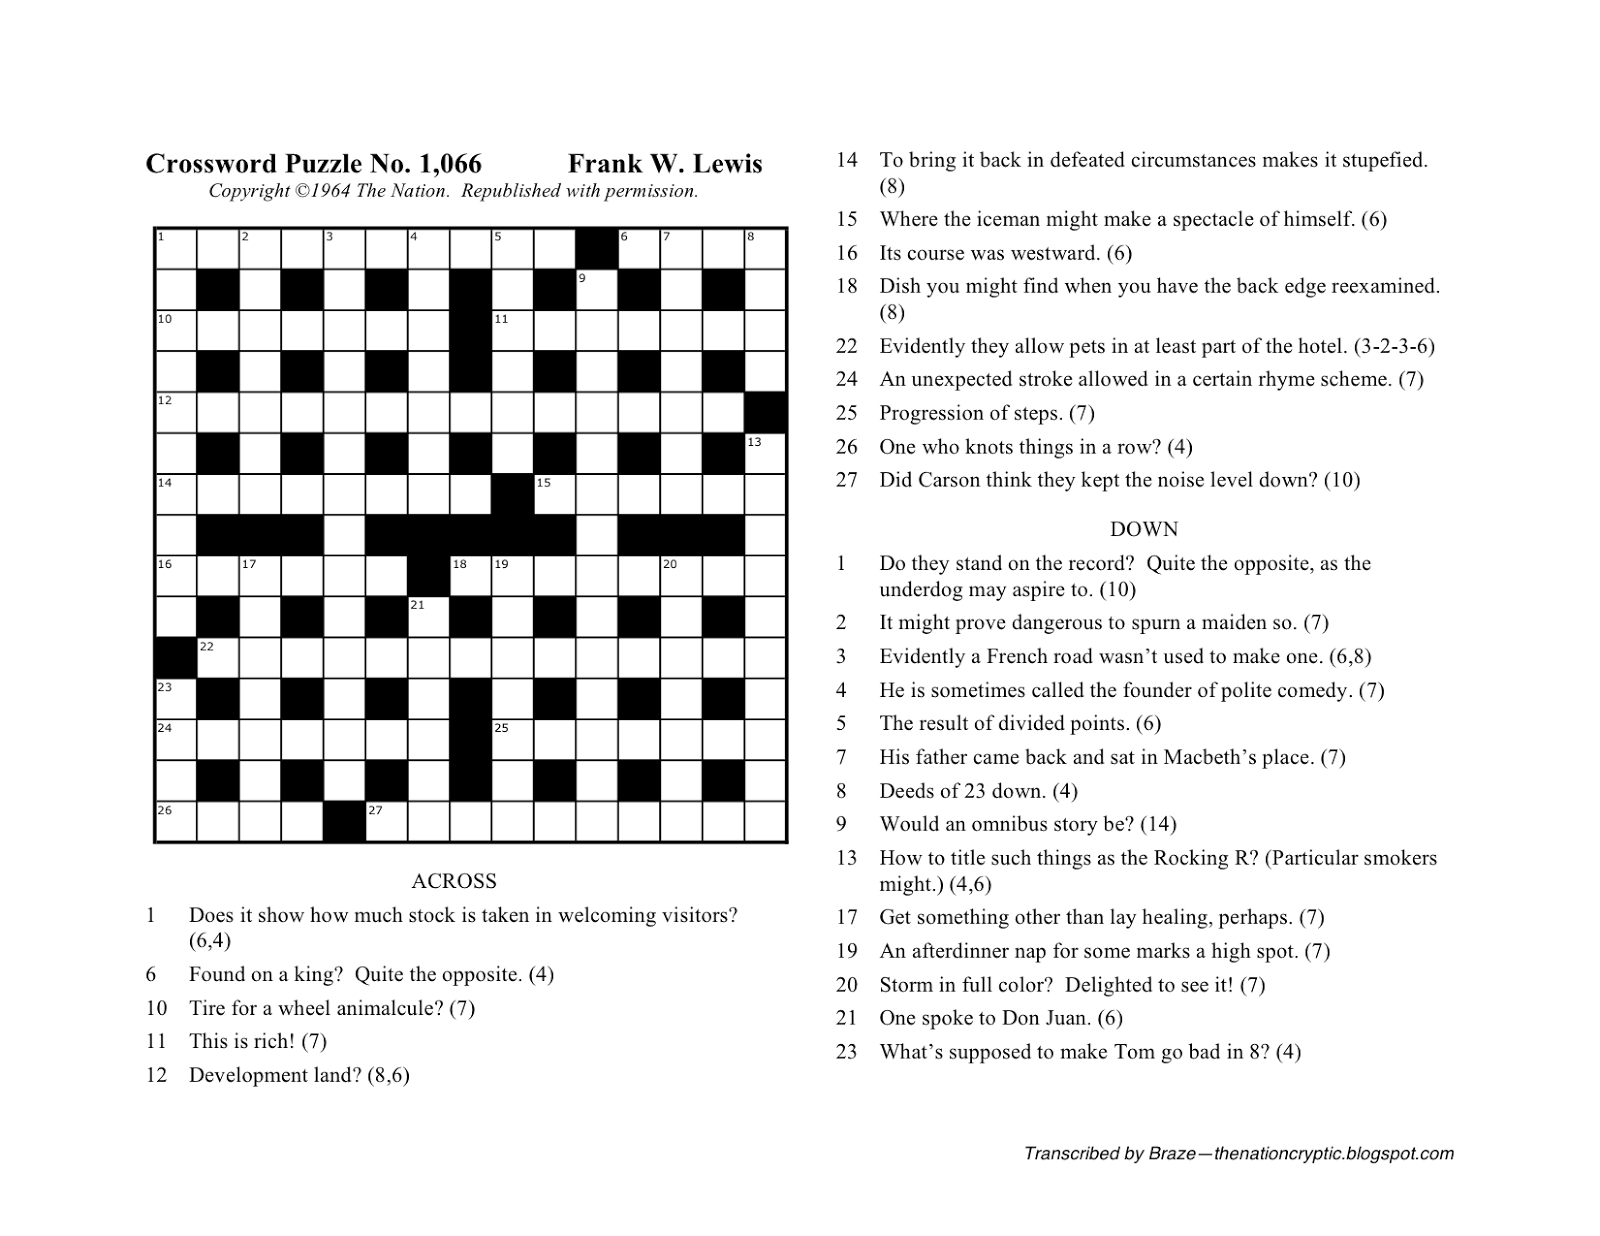 photograph relating to Cryptic Crosswords Printable called The Region Cryptic Crossword Discussion board: Nat Hentoff (Puzzle No